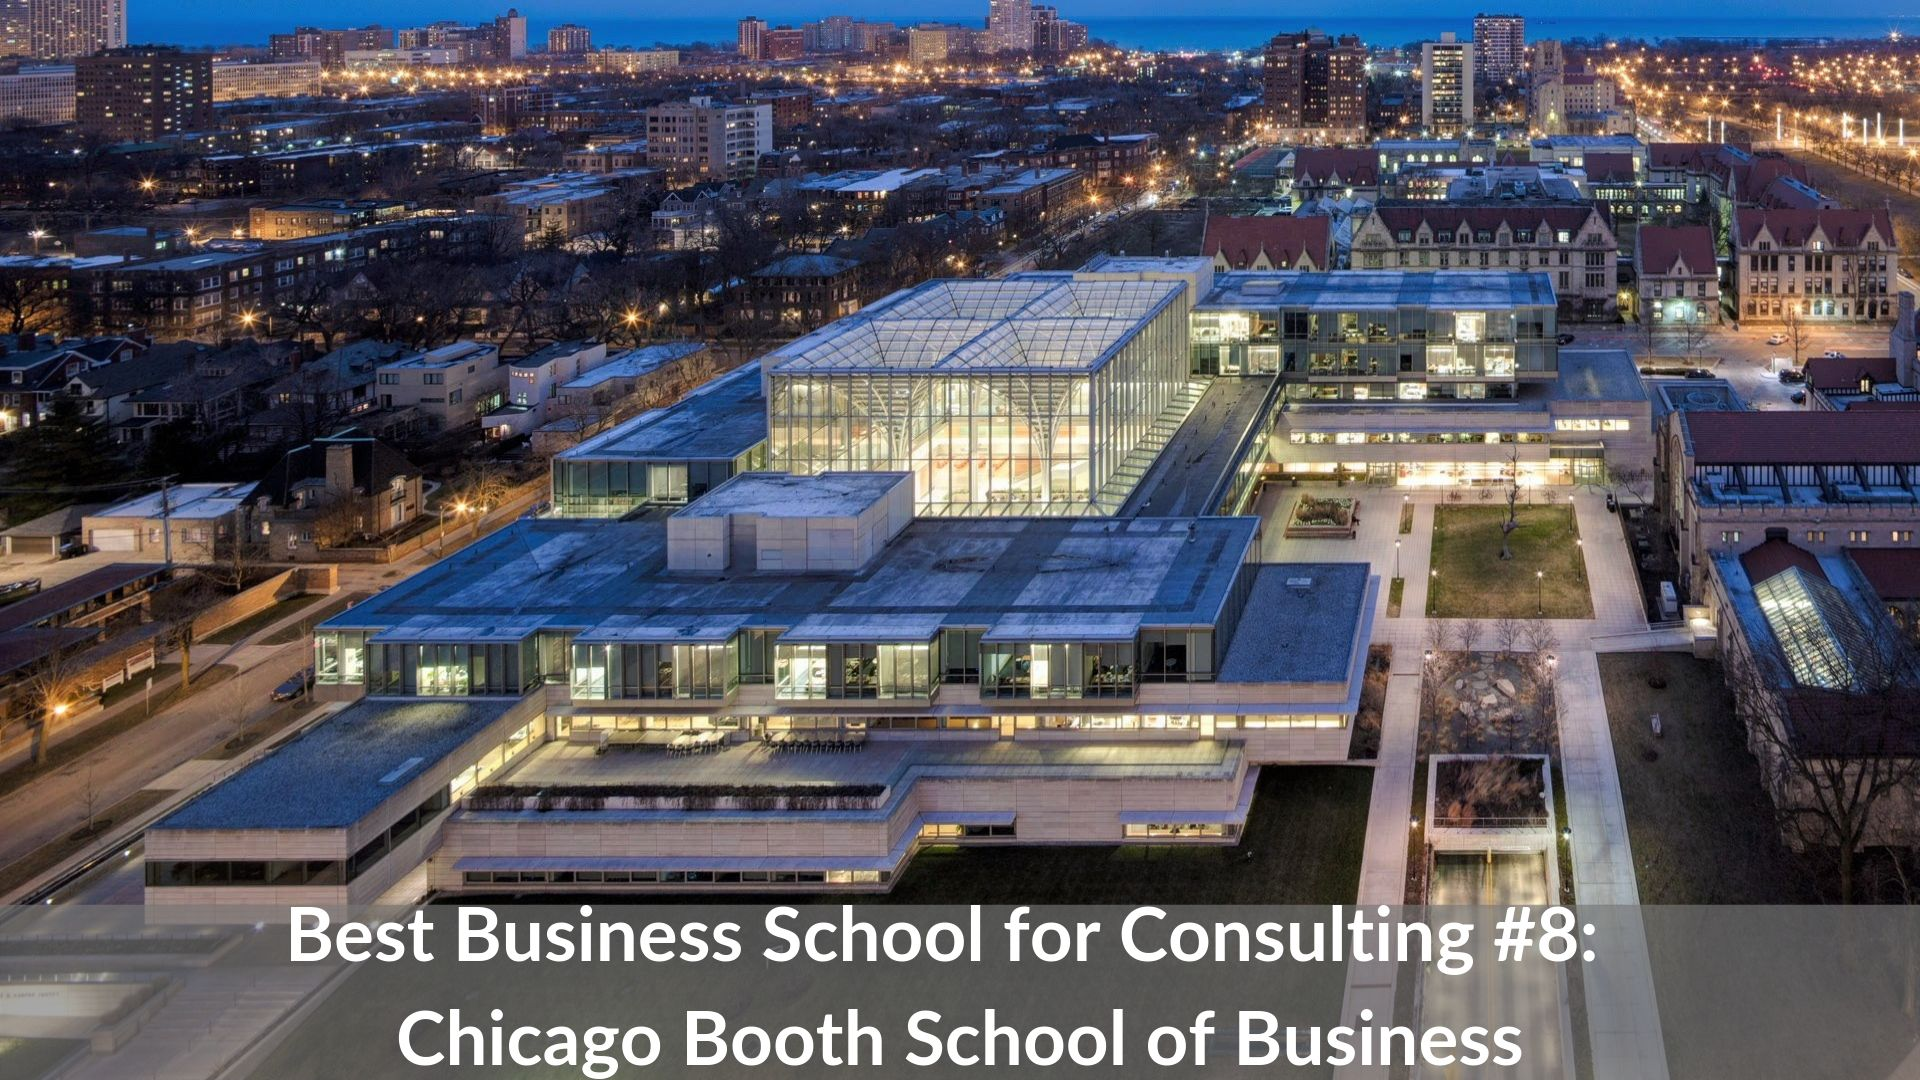 Technology Management Image: Top 10 Best Business Schools For Consulting Careers